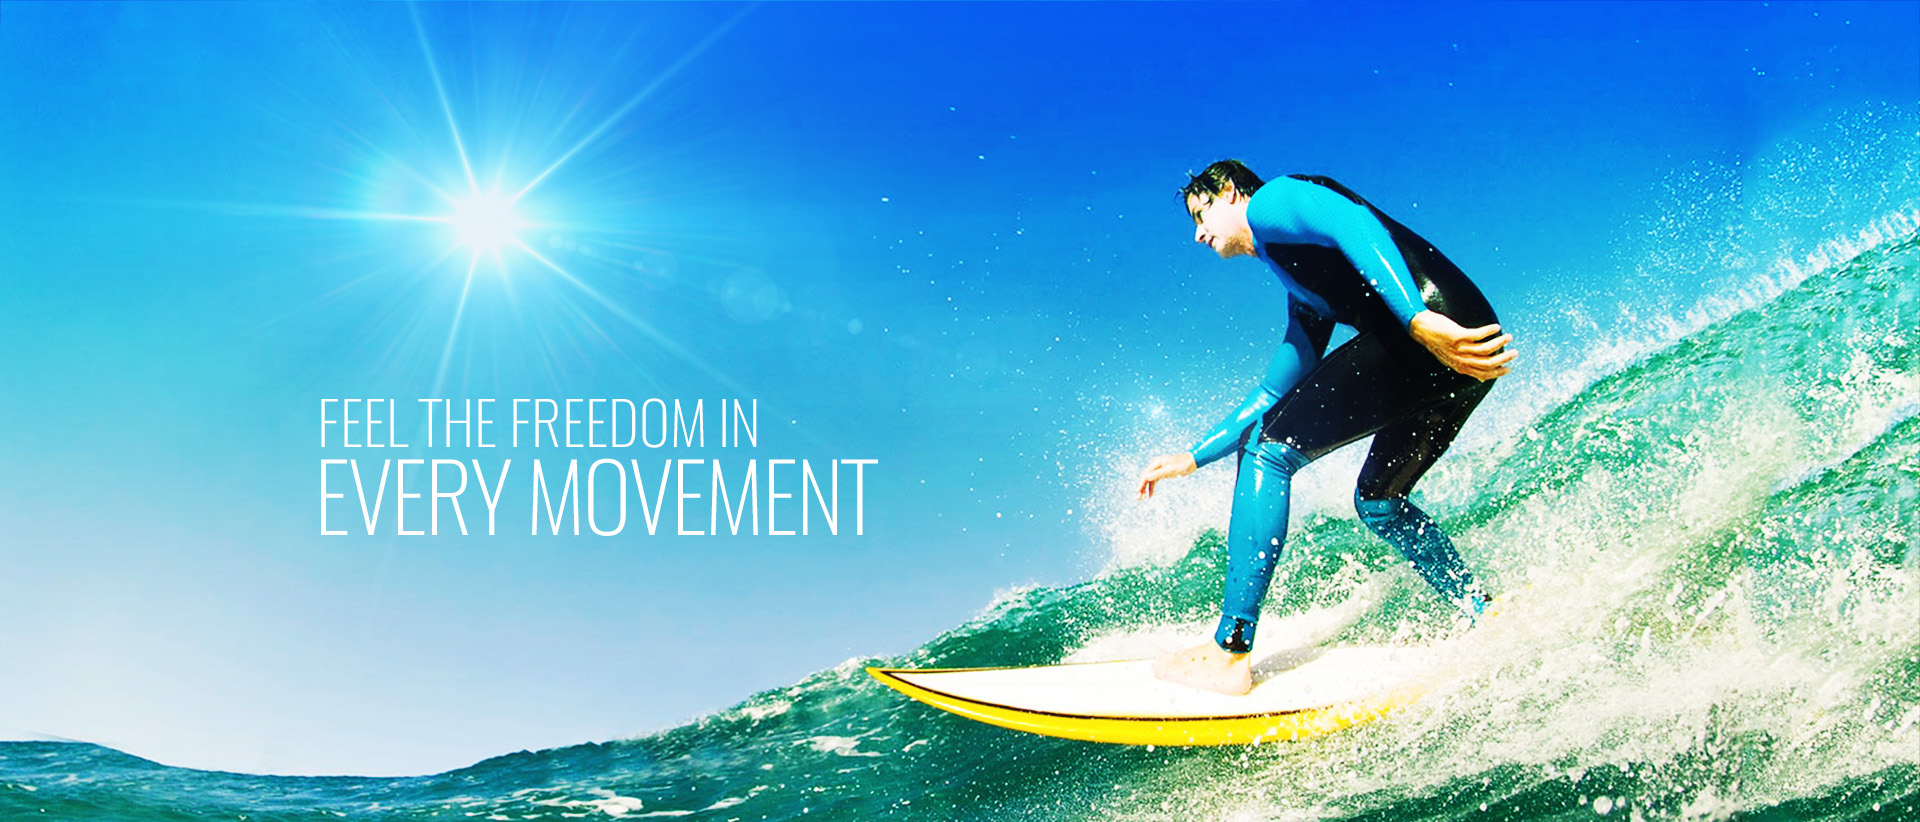 IN MOVEMENT-FEEL FREEDOM